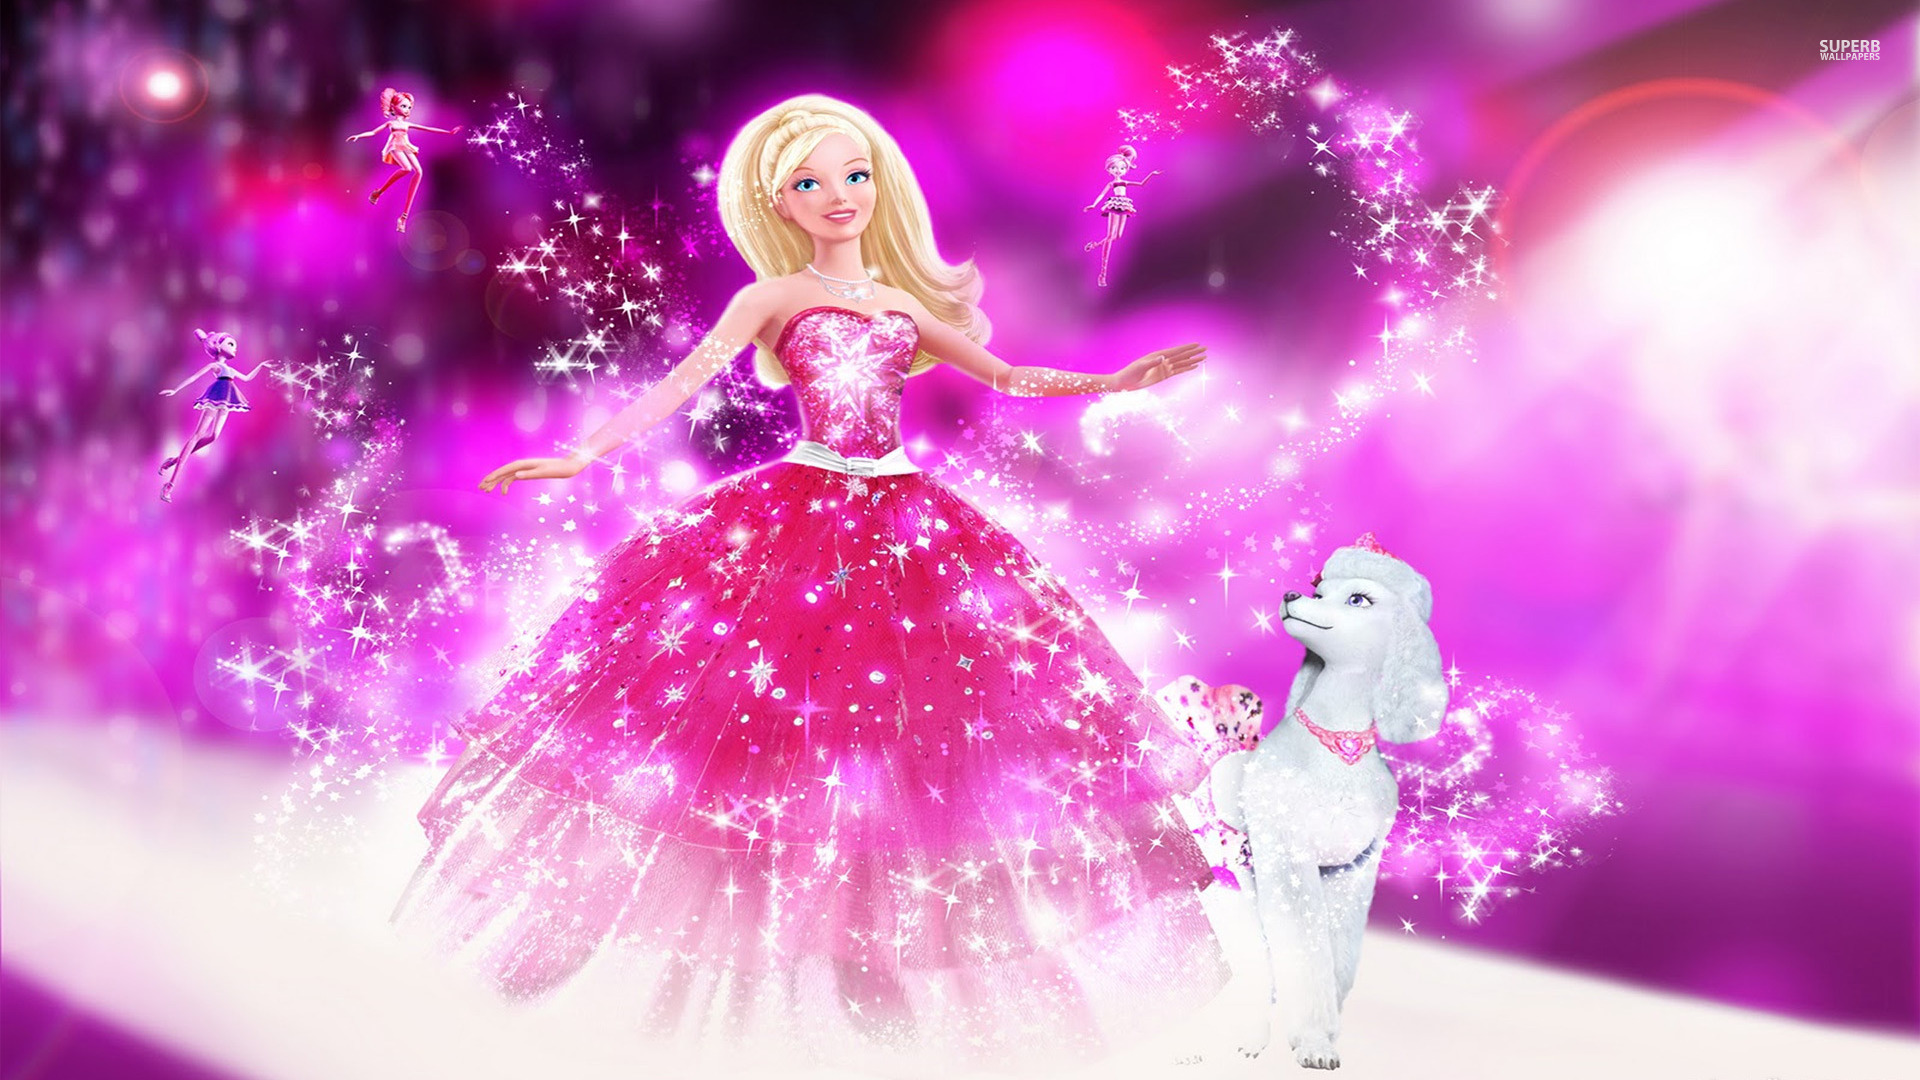 barbie images wallpaper